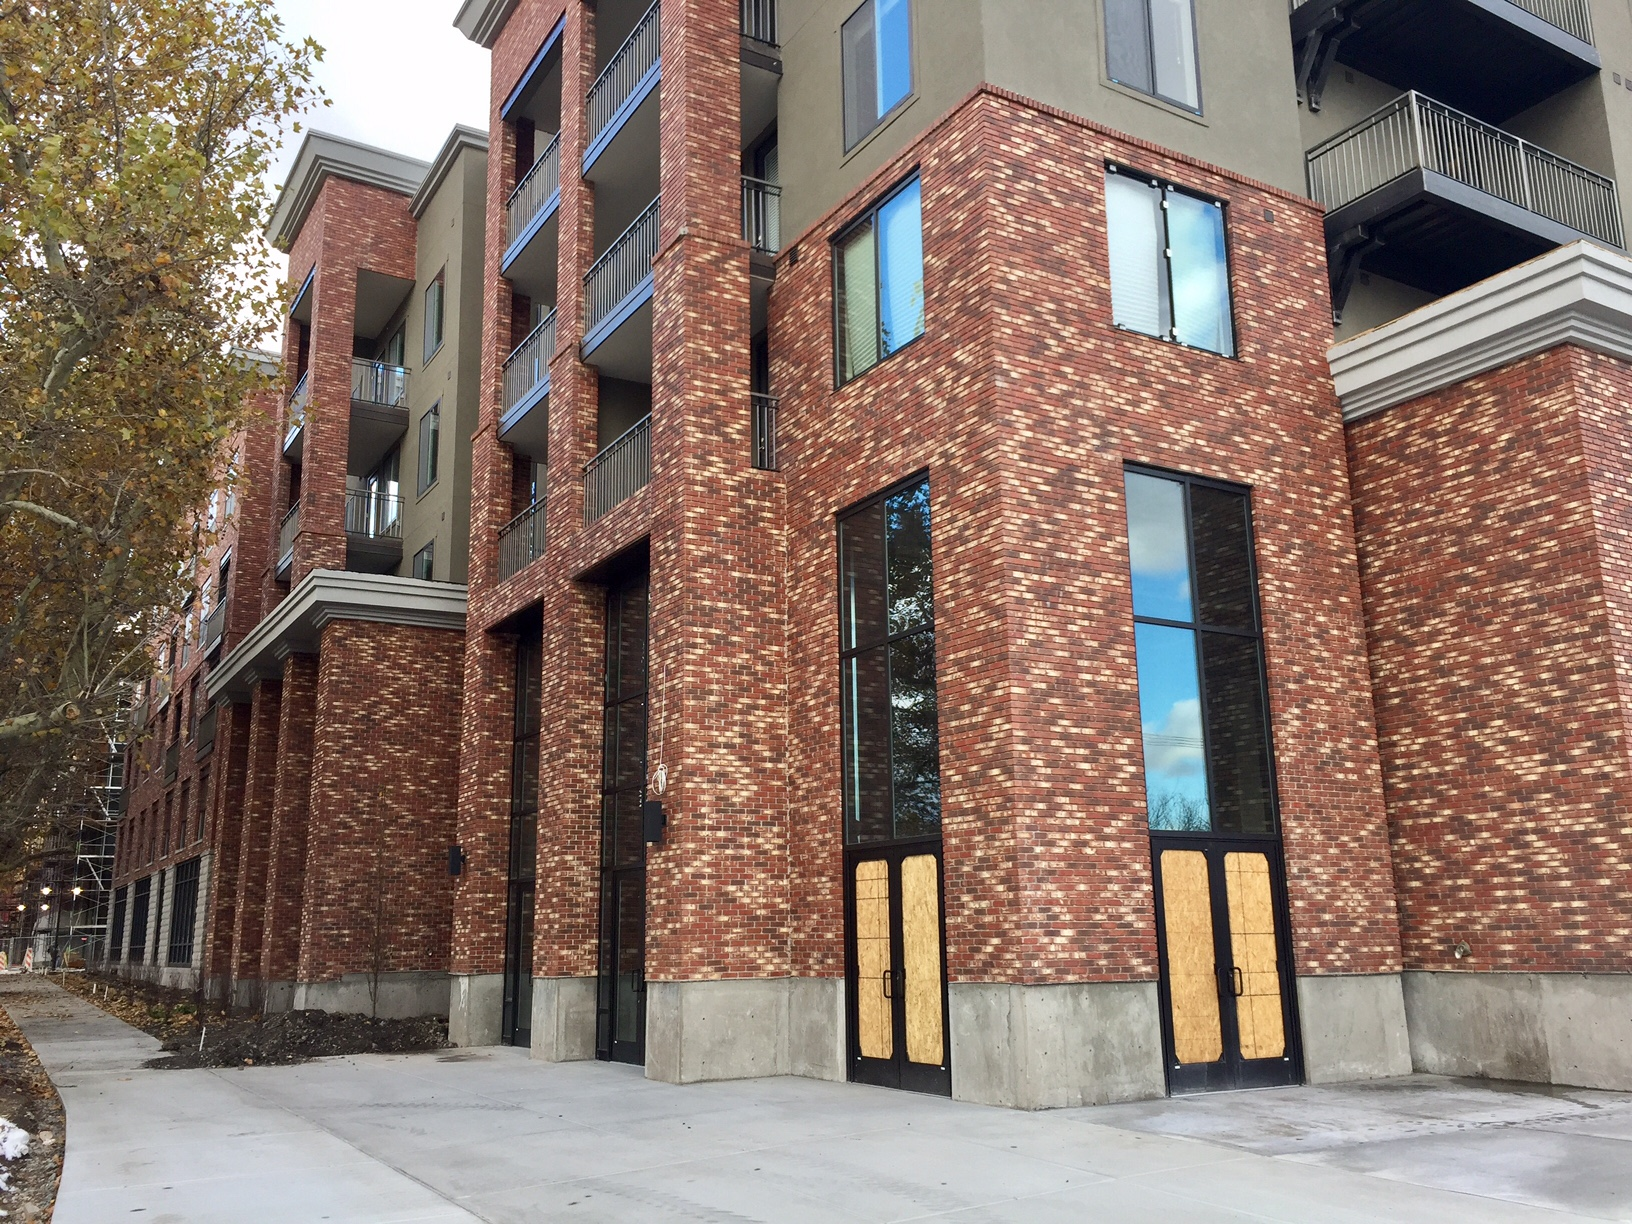 4th-west-apartments-11-21-16-1